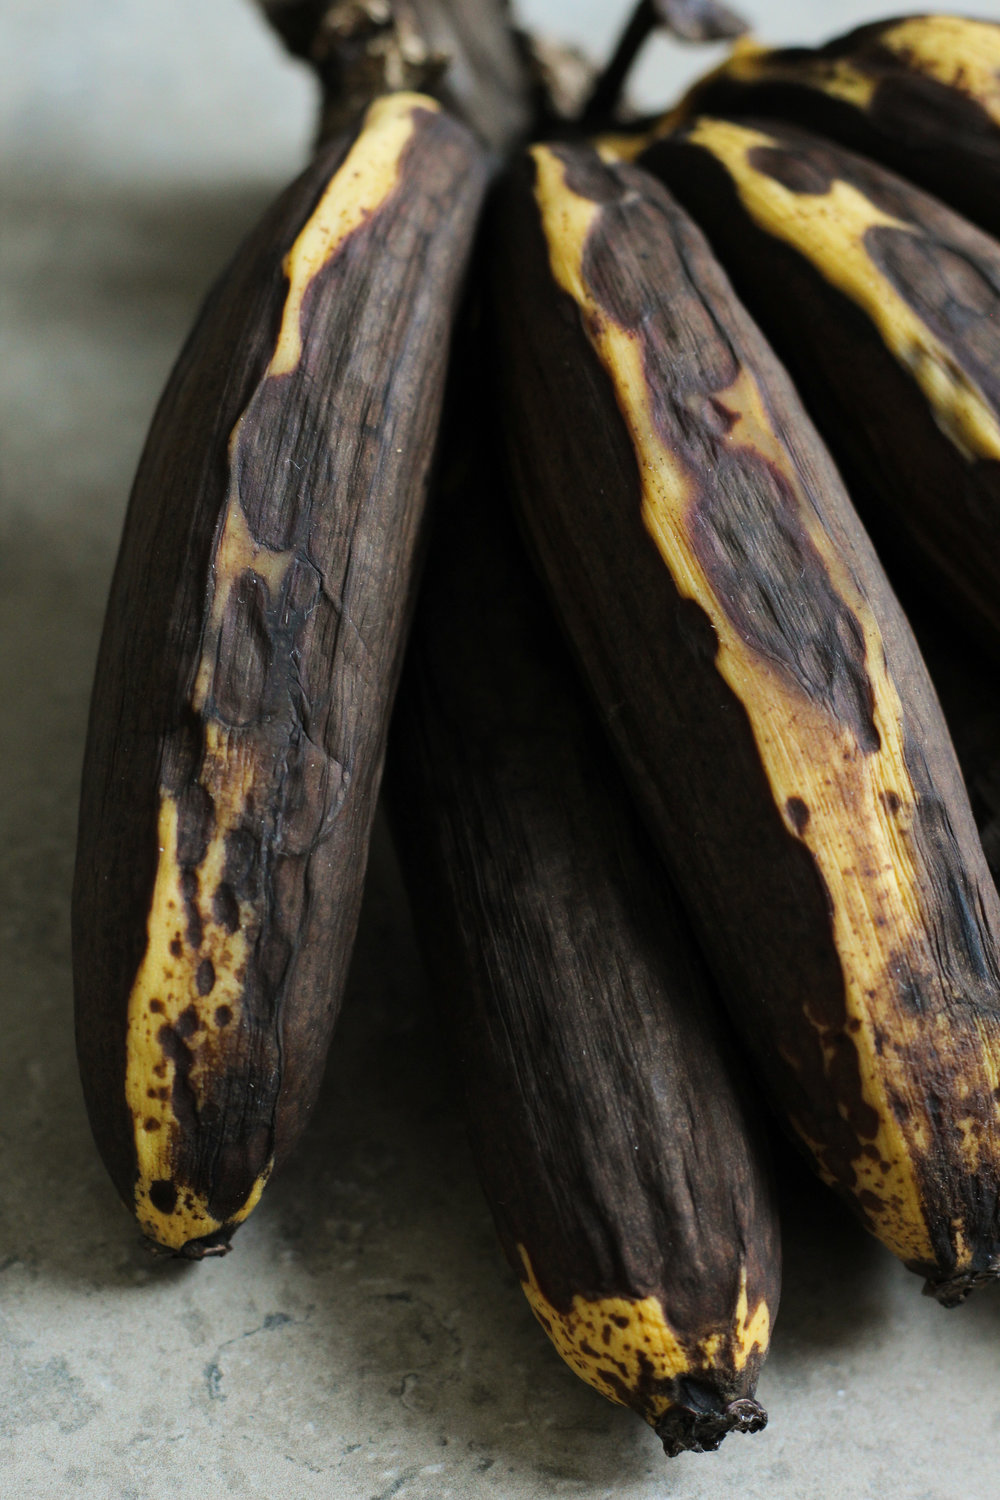 Old Bananas for Banana Bread